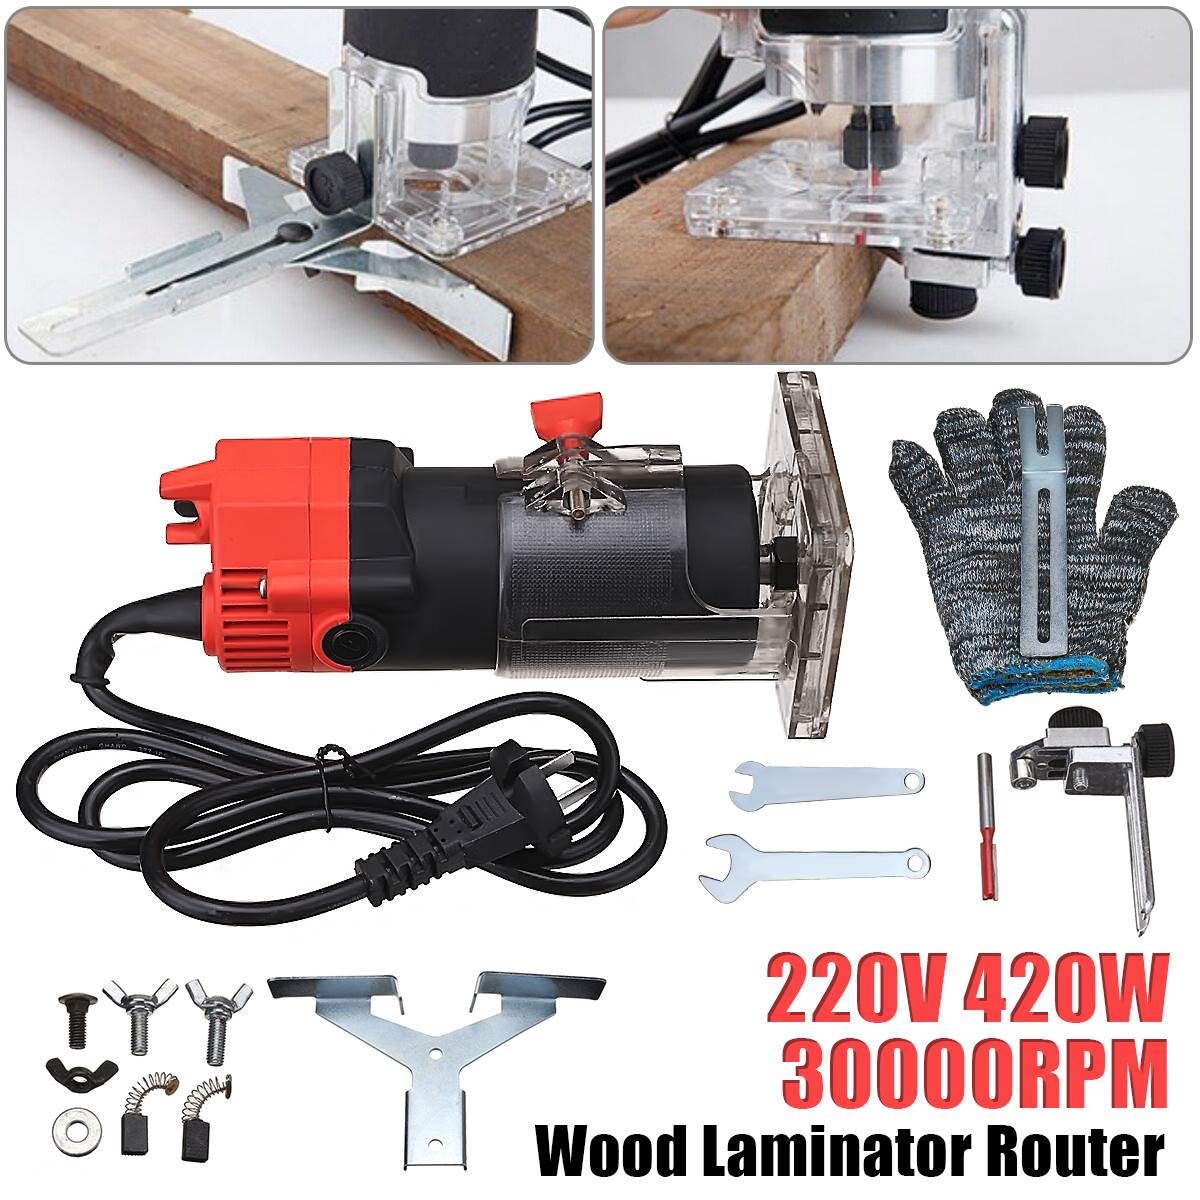 New 220V 420W 30000RPM Electric Edge Trimmer Multi Function Woodworking Machine Wood Edge Cutter/Router Set + Wrench Gloves round edge cutter mixed function of